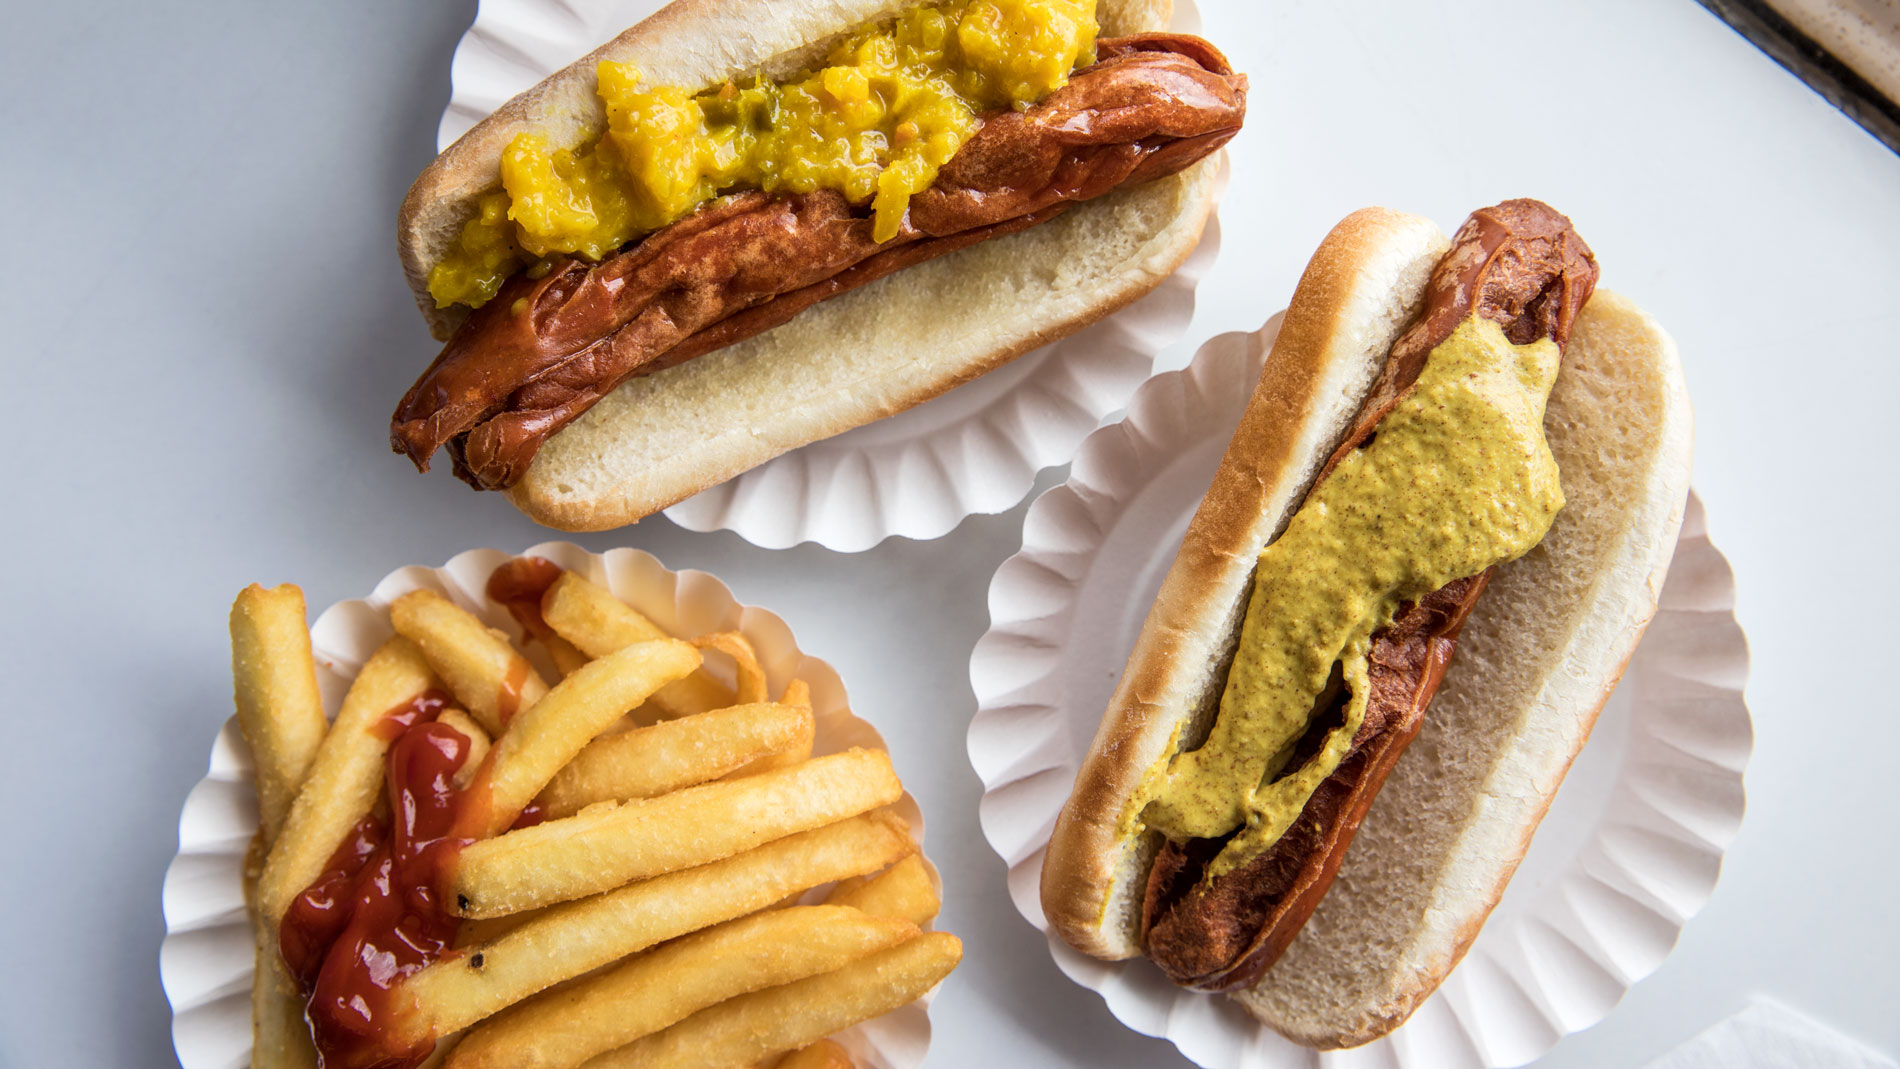 The Reason Why New Jersey Hot Dogs Taste So Good